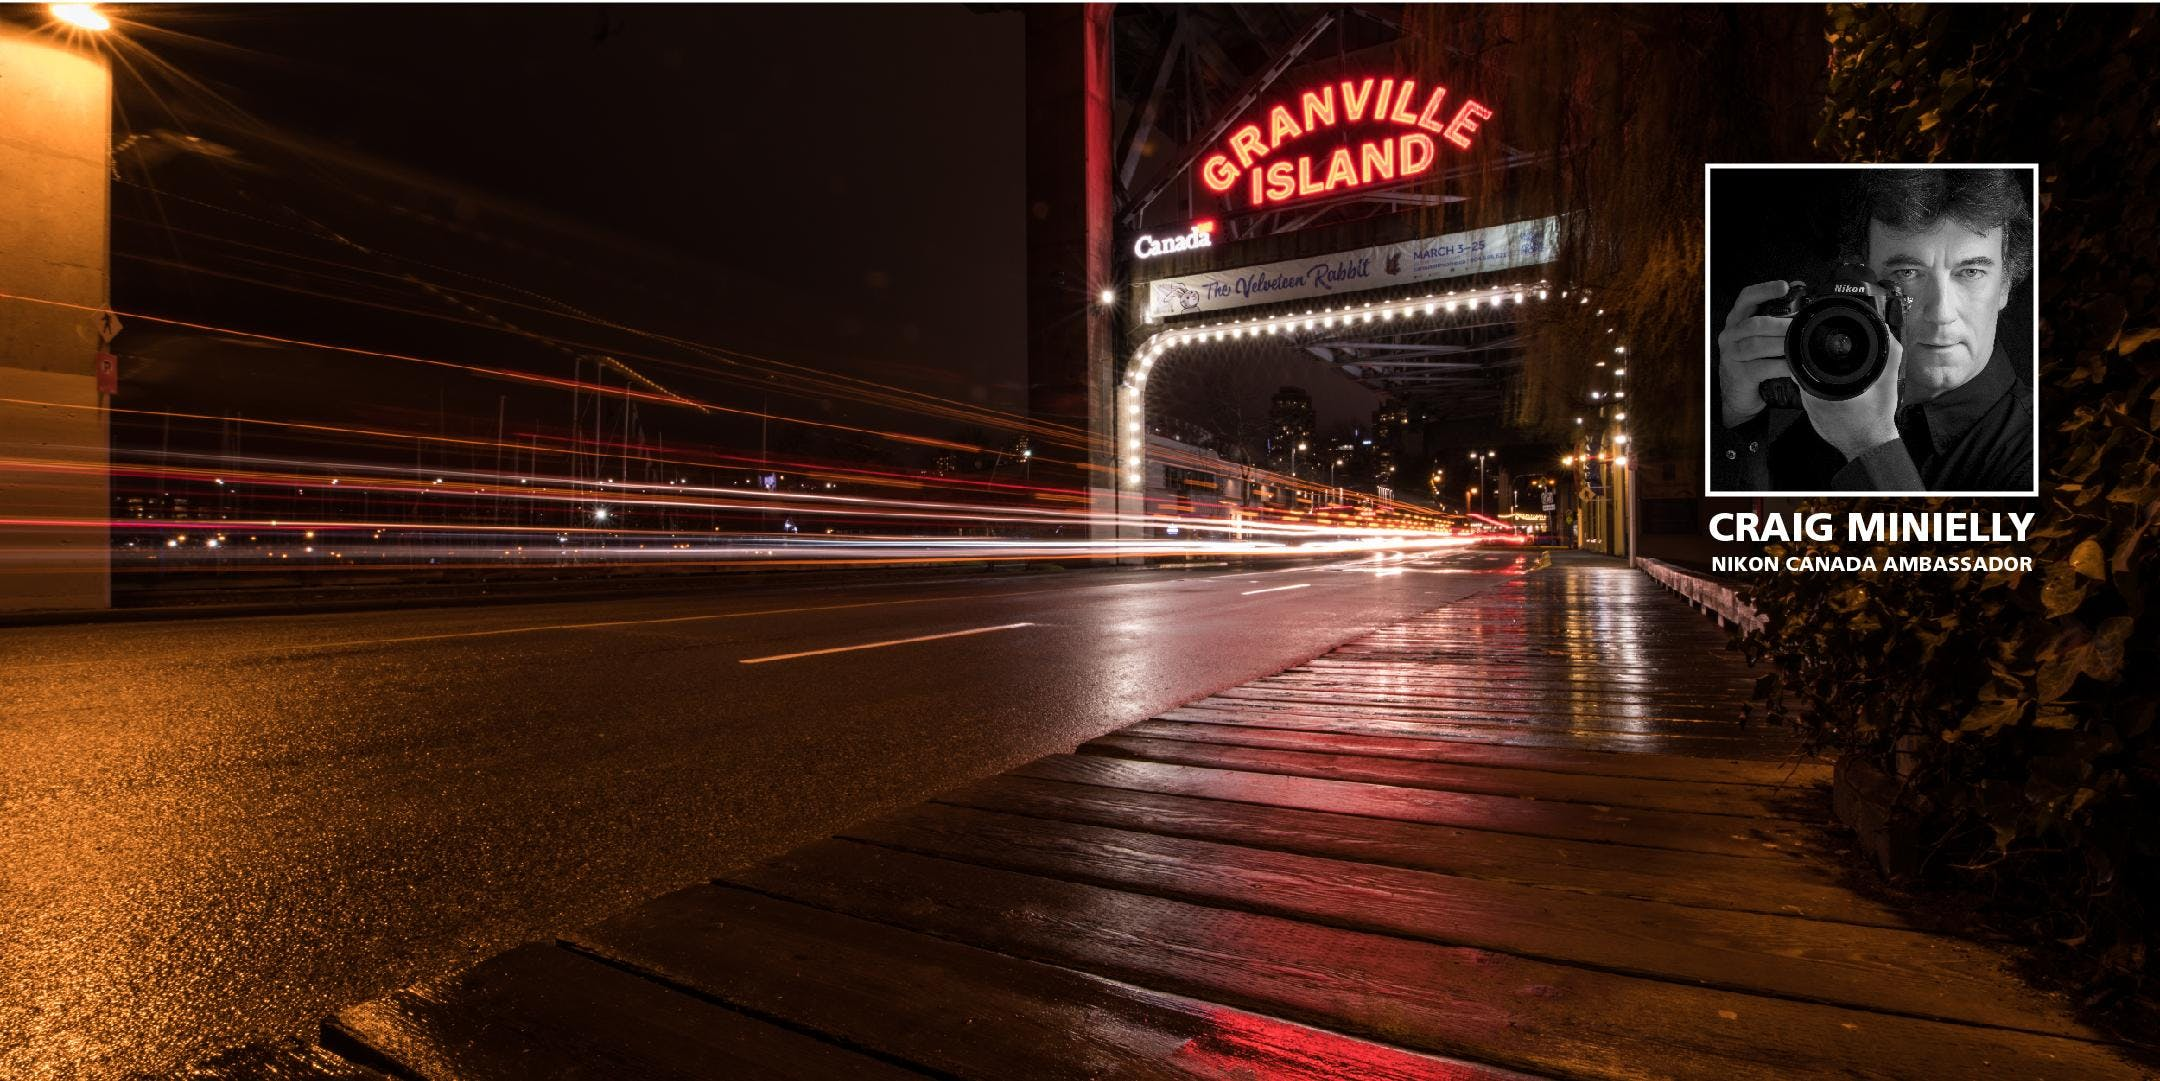 The Granville Island Photo Walk with Craig Minielly at Net